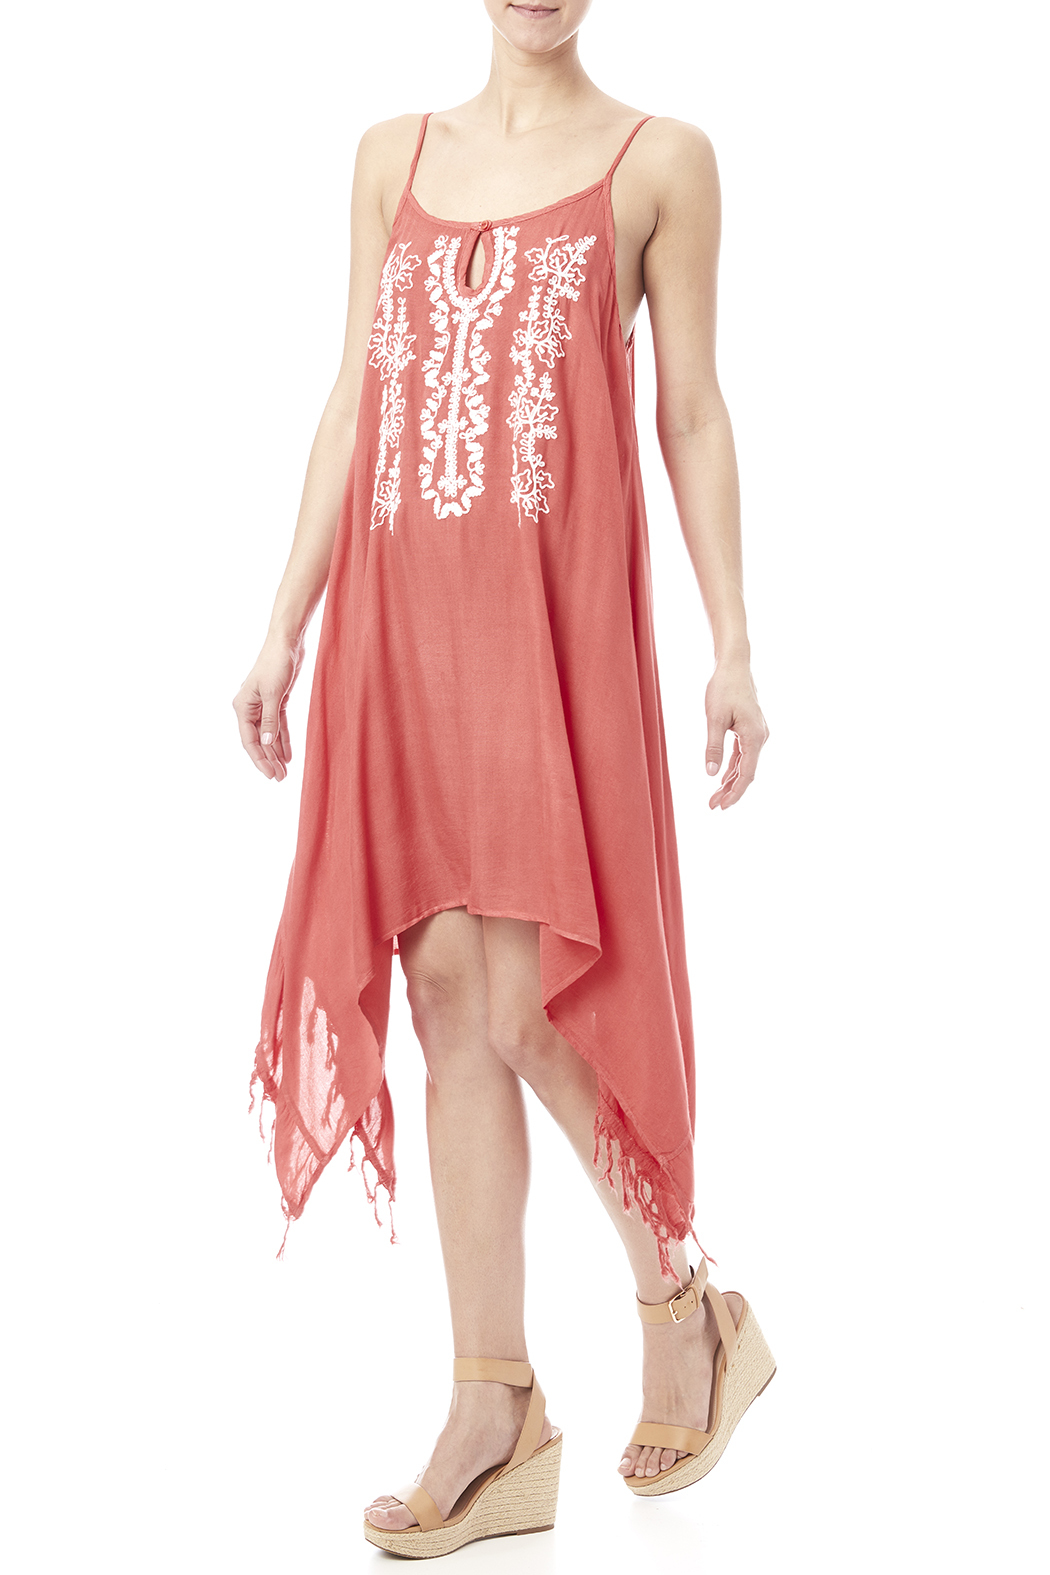 abab52ffbf Beach by Exist Embroidered Drape Dress from Idaho by Garment ...